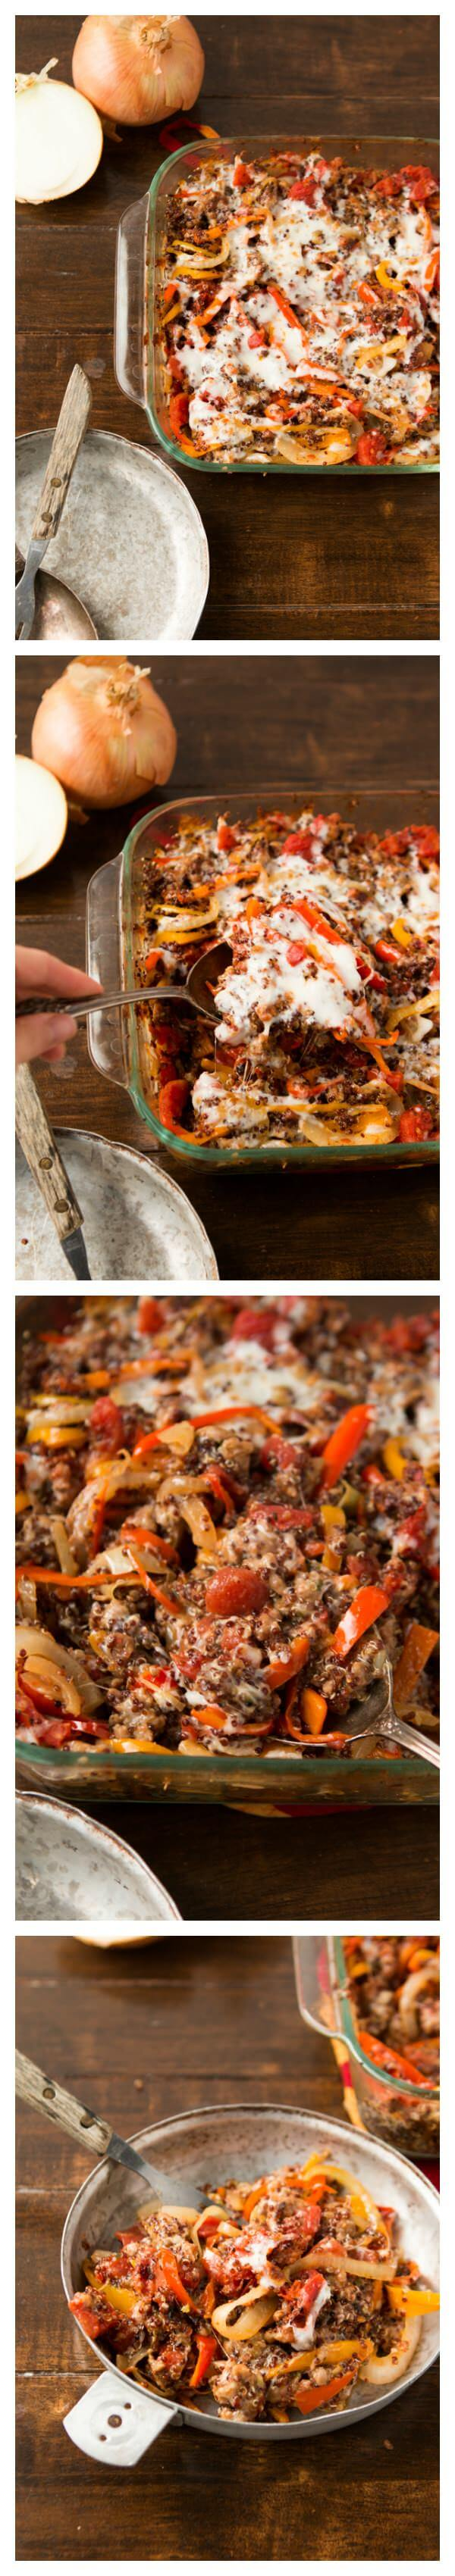 Quinoa Stuffed Peppers Casserole has become our KIDS' favorite as well as ours. Gotta love that! ohsweetbasil.com